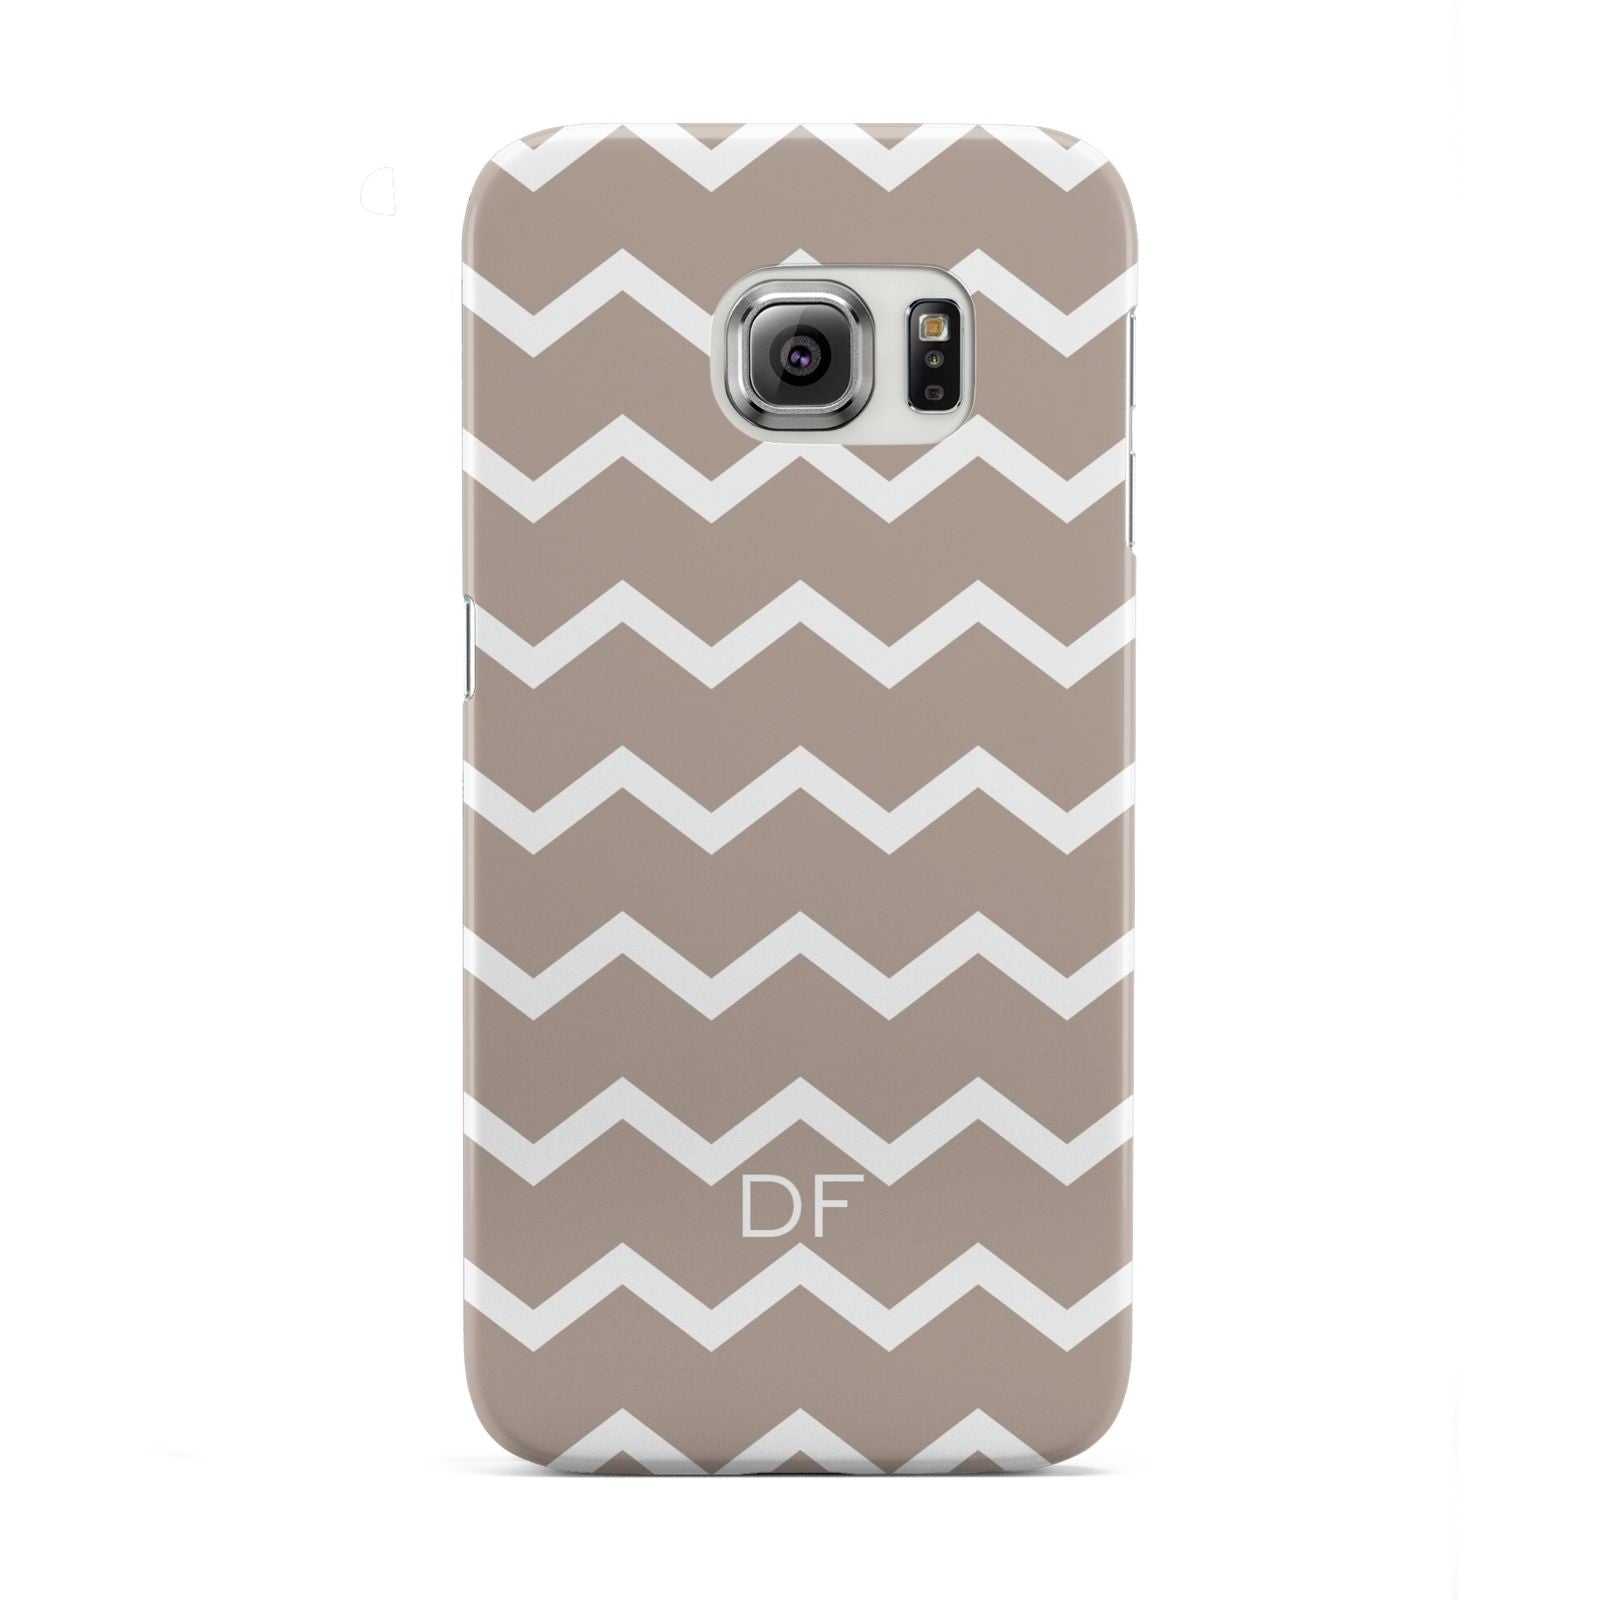 Personalised Chevron Beige Samsung Galaxy S6 Edge Case